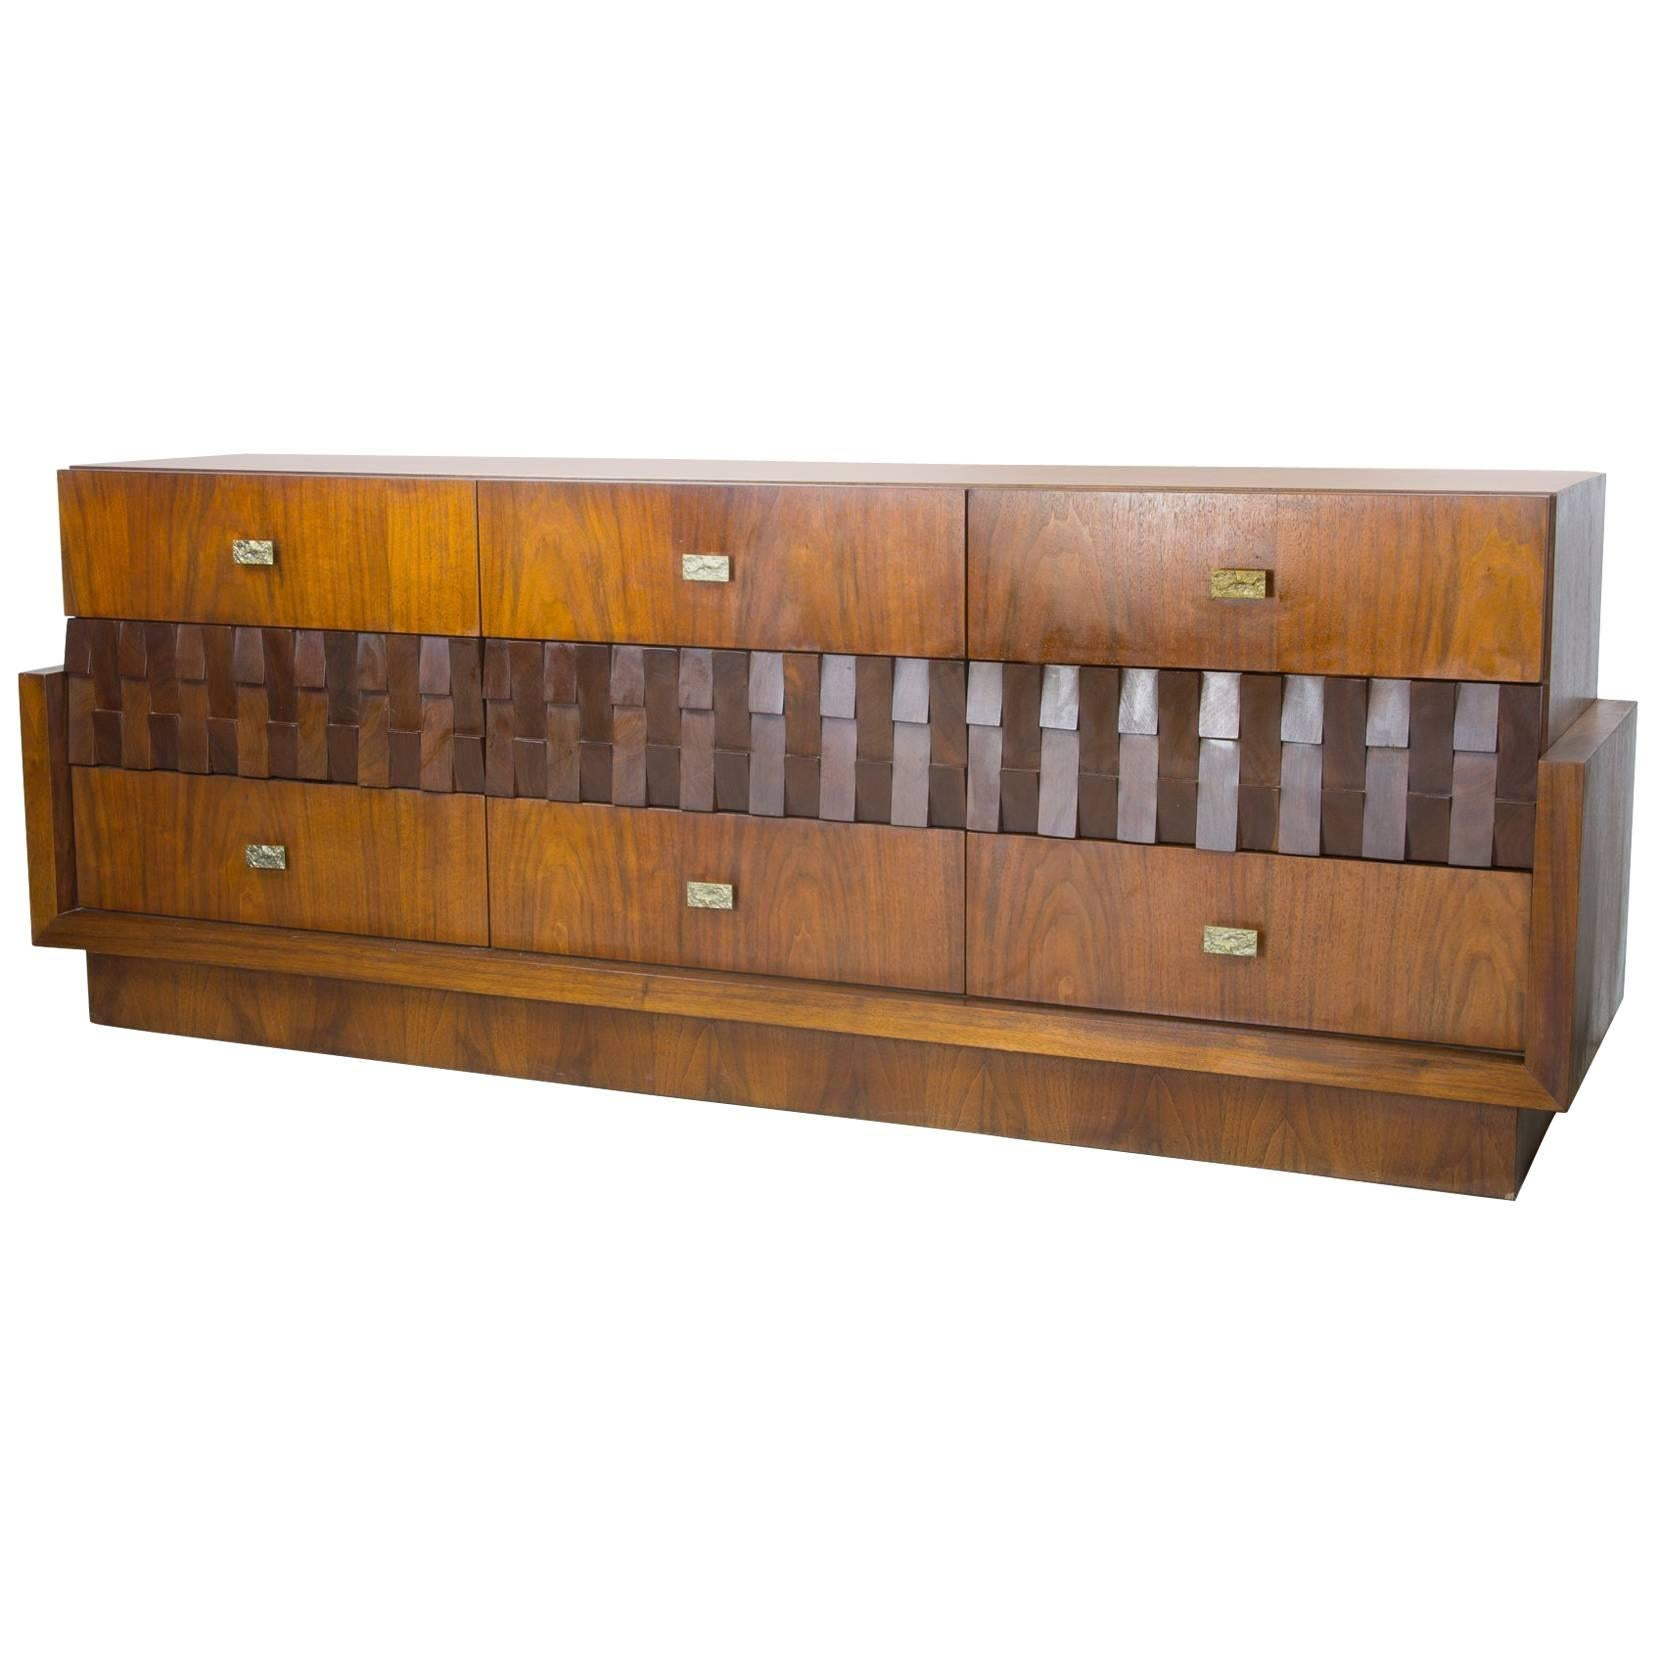 Monumental Walnut Dresser with Faceted Front